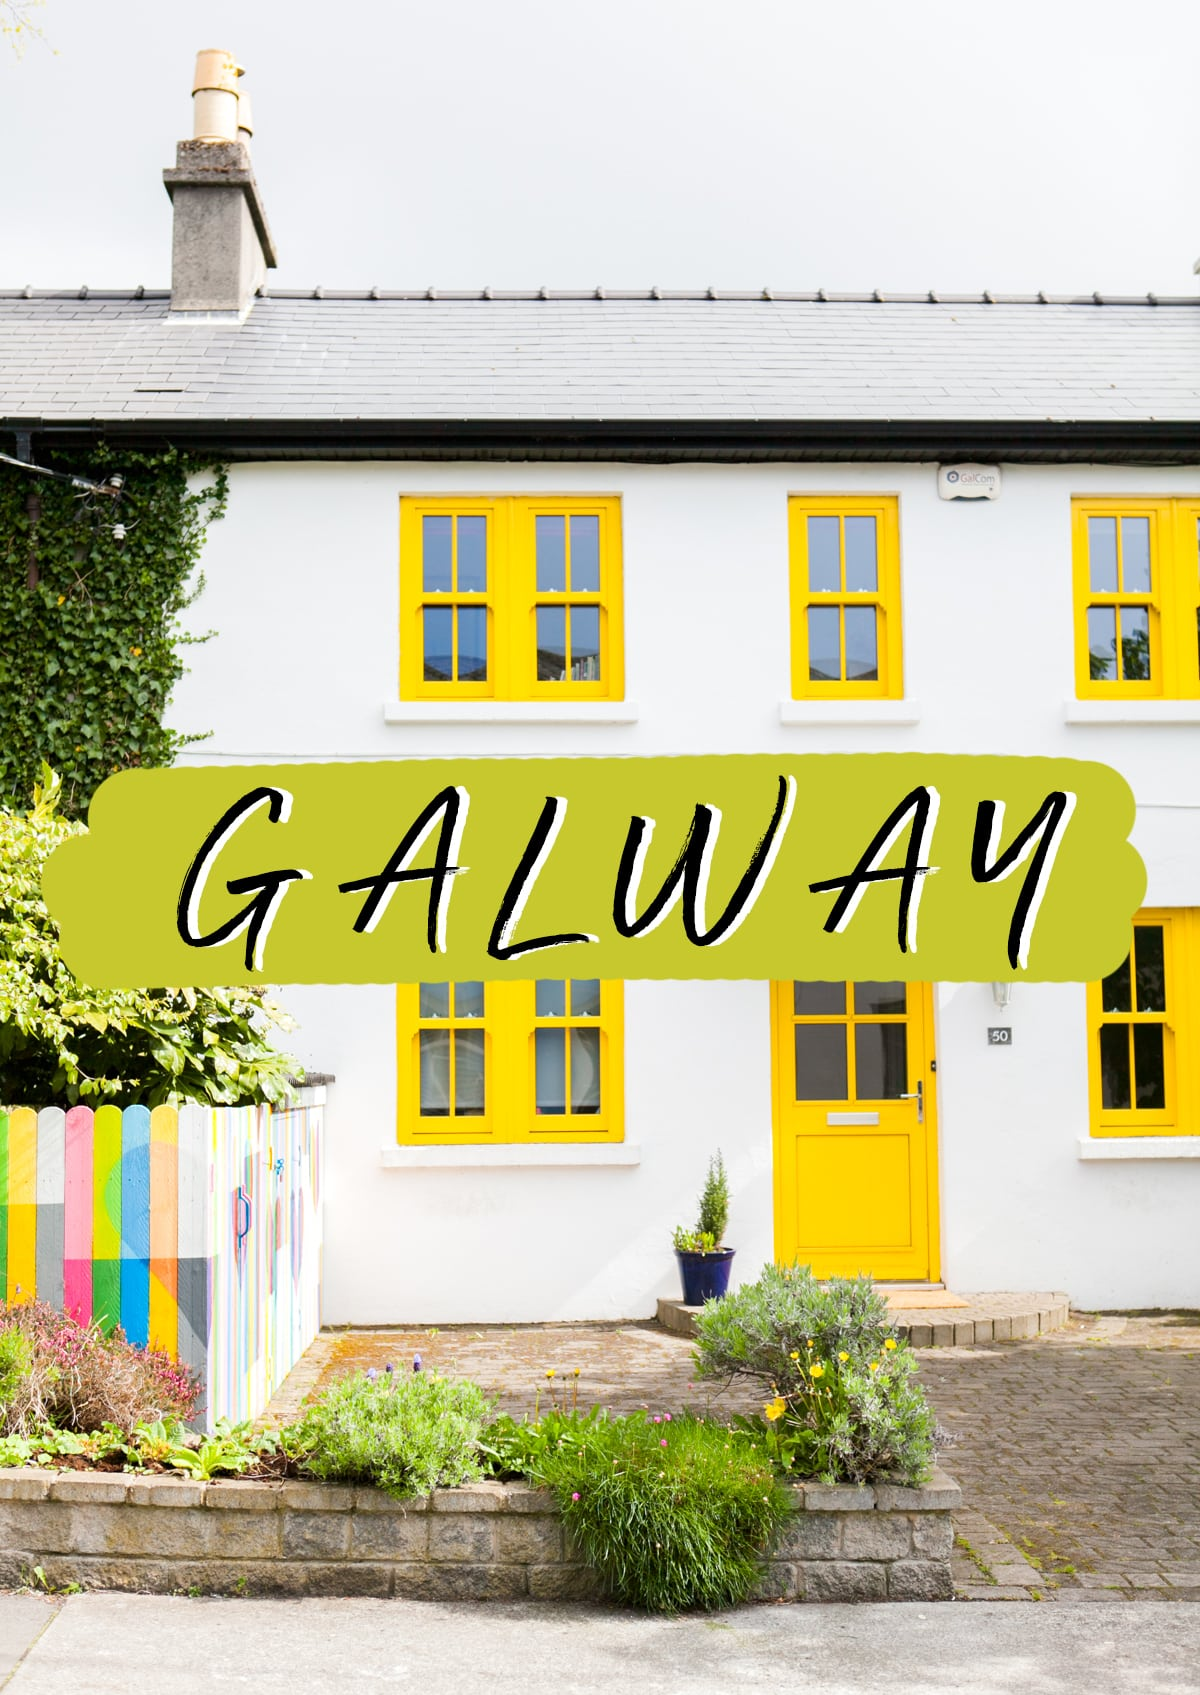 A Short Stay in Galway, Ireland | Cliffs of Moher | Travel Tips | Baecation 2018 | Jessica Brigham | Magazine Ready for Life